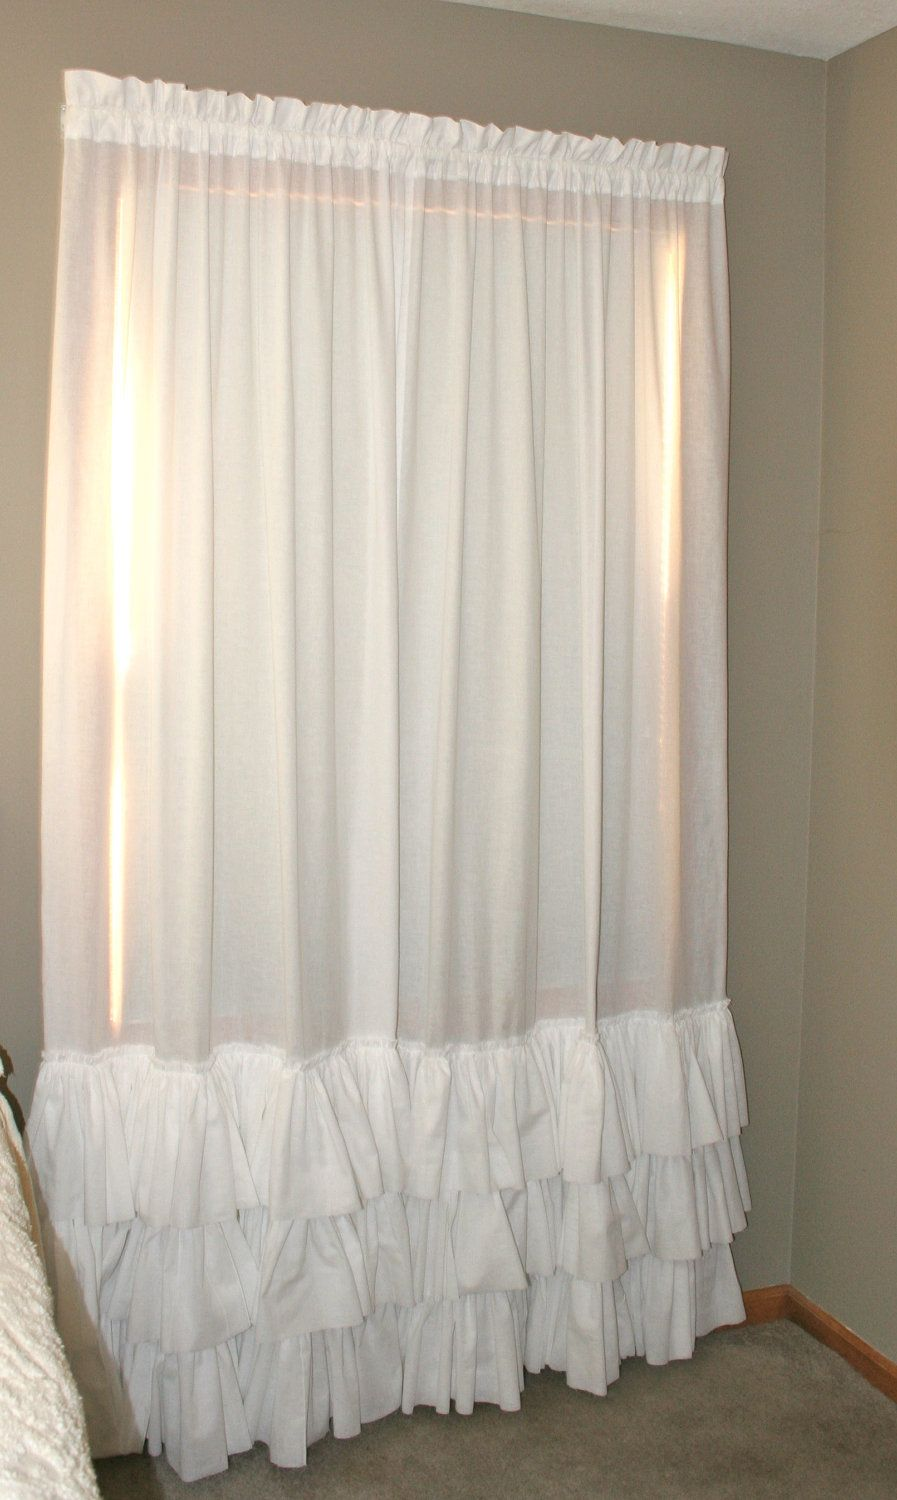 Bed against window with curtains  panels  curtains  window treatment  white triple ruffle pair